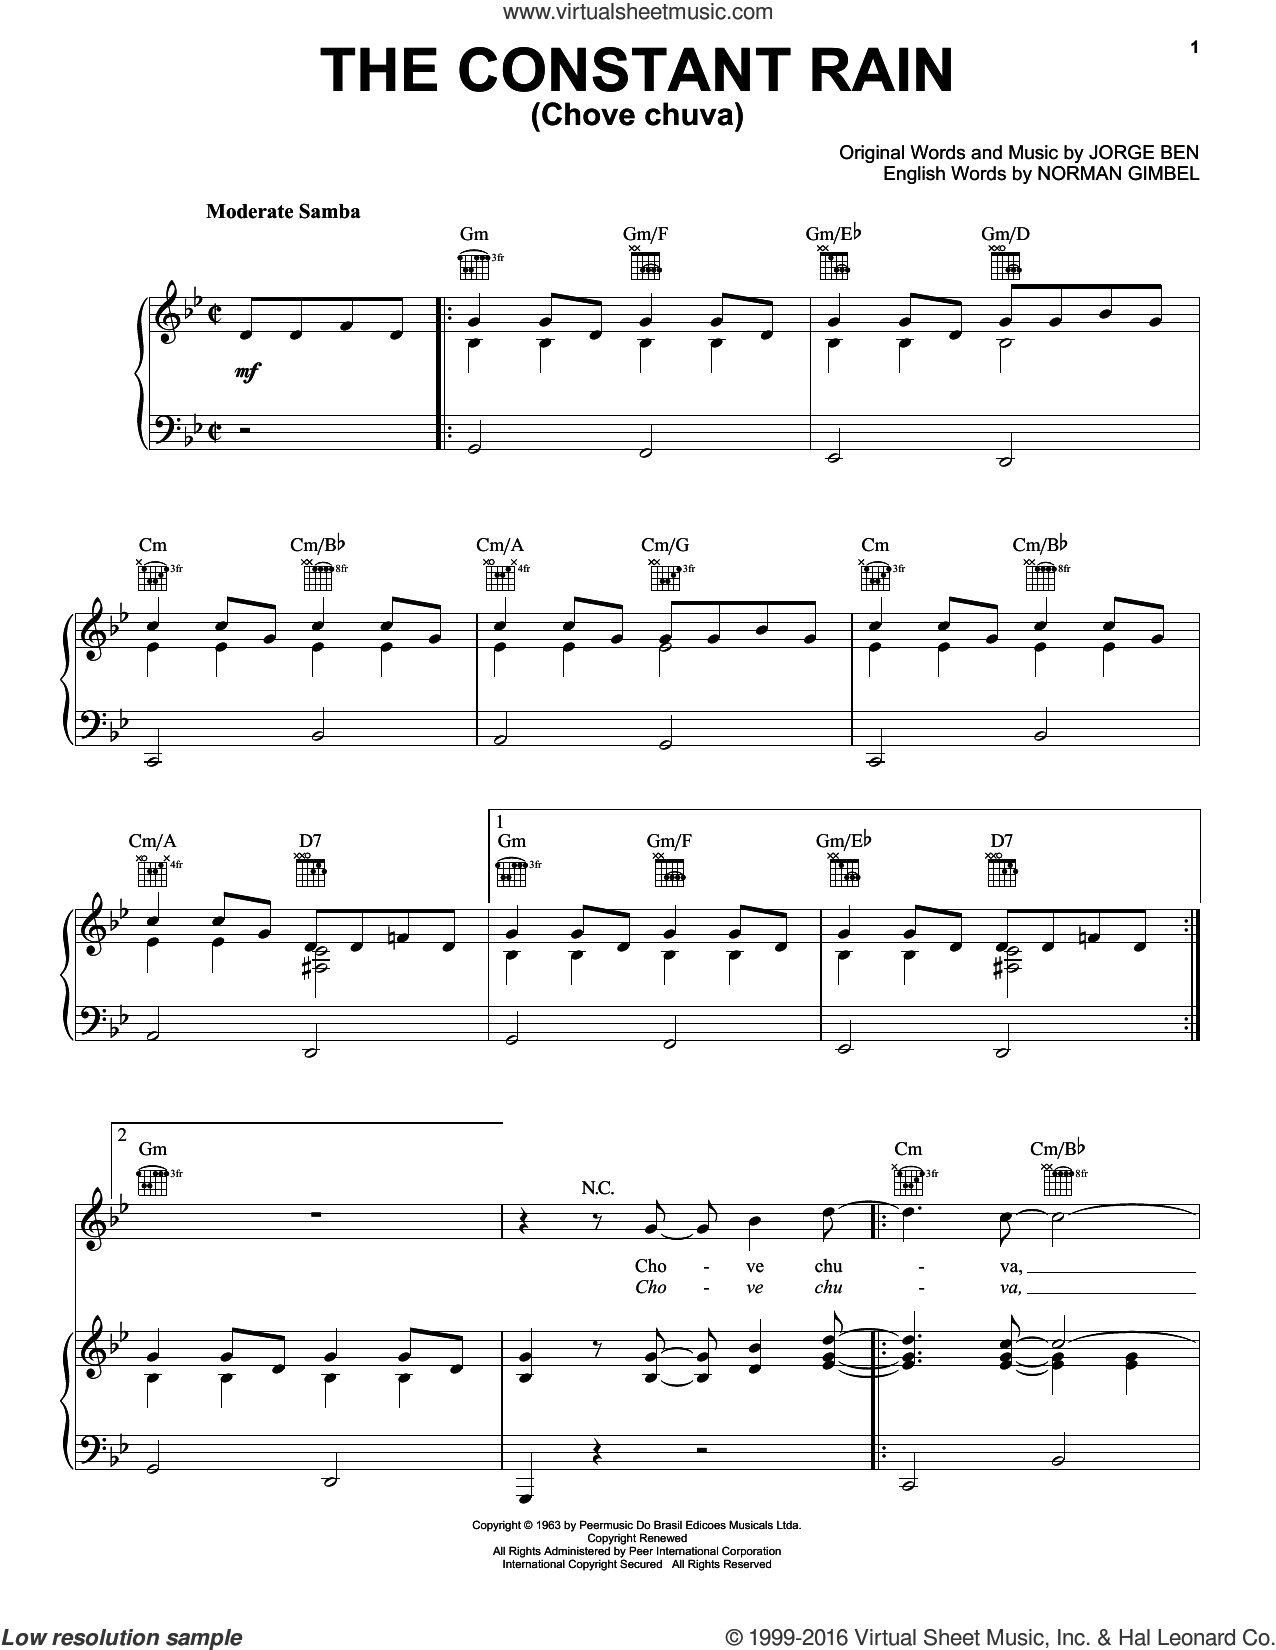 The Constant Rain (Chove Chuva) sheet music for voice, piano or guitar by Norman Gimbel and Jorge Ben, intermediate skill level